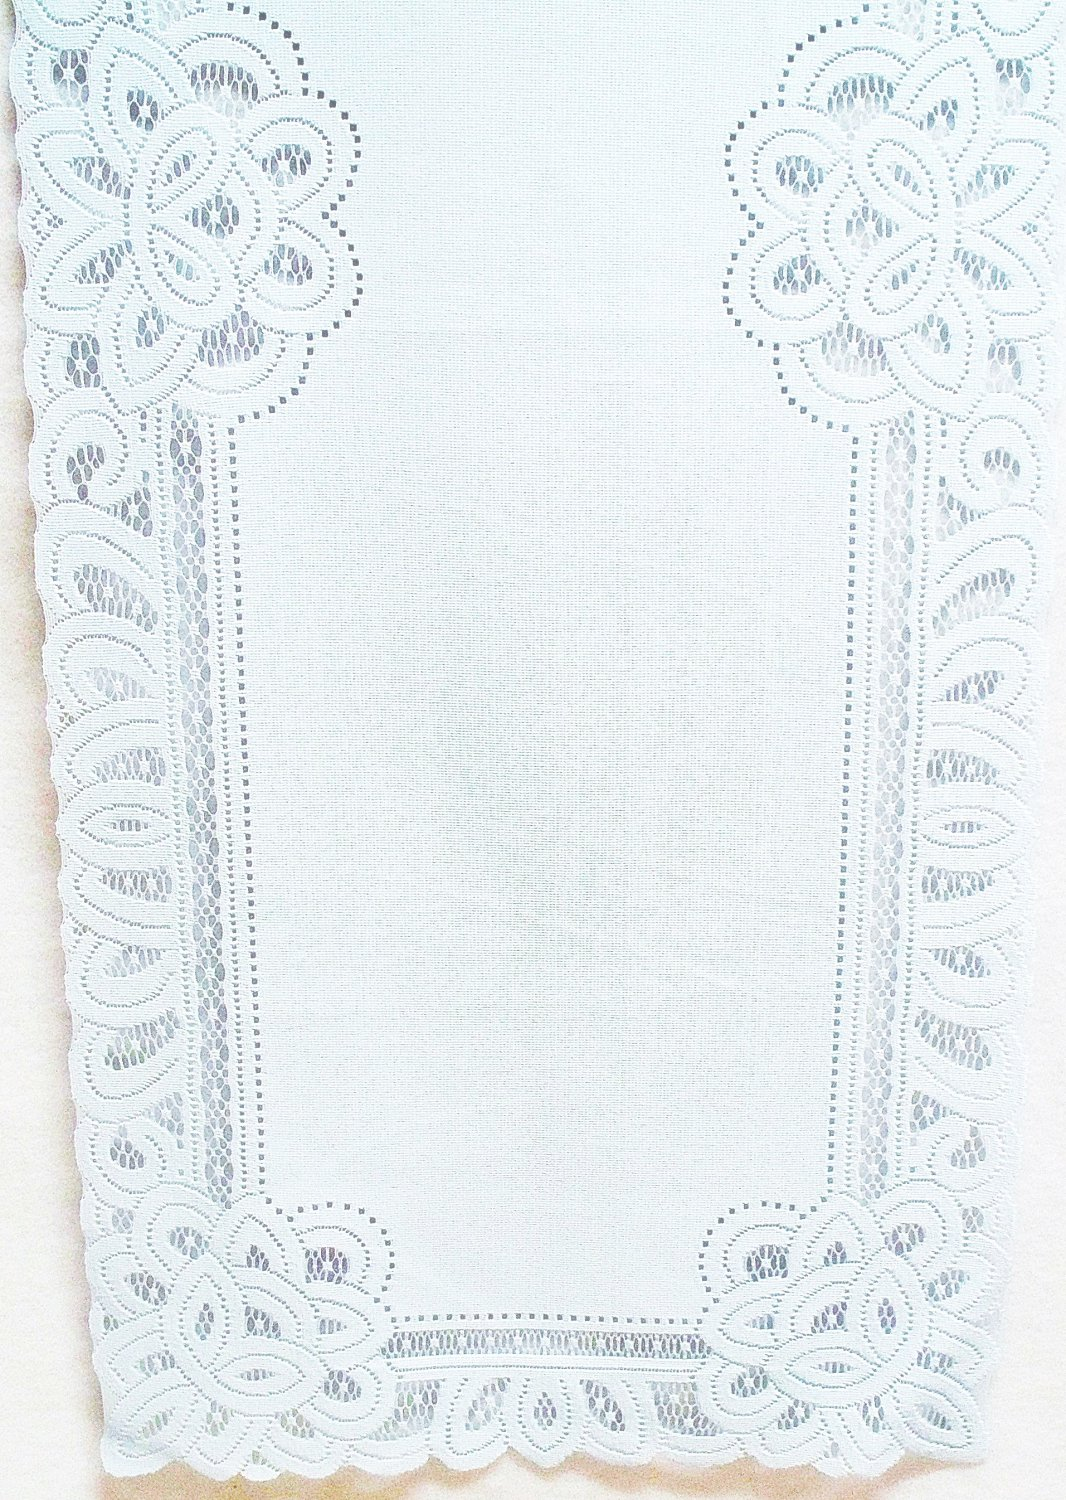 Battenburg Table Runner 14x70 Light Blue Lace/Fabric Table Runner Machine Washable Oxford House